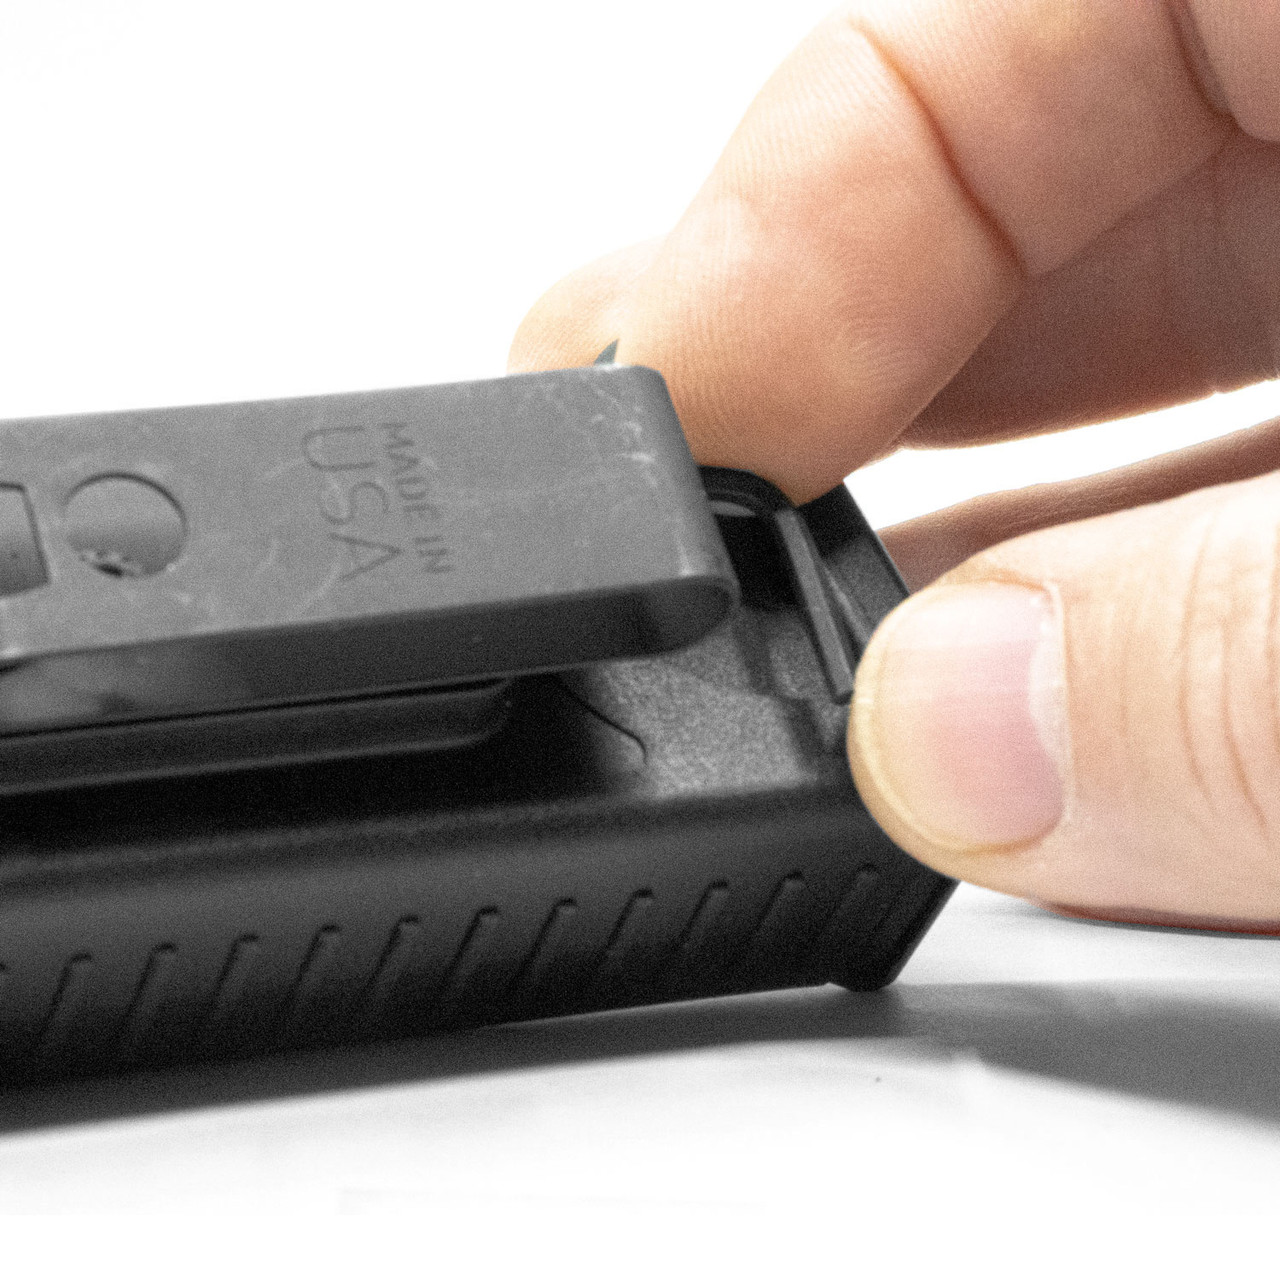 Deep Carry clip for the Ammo Klip